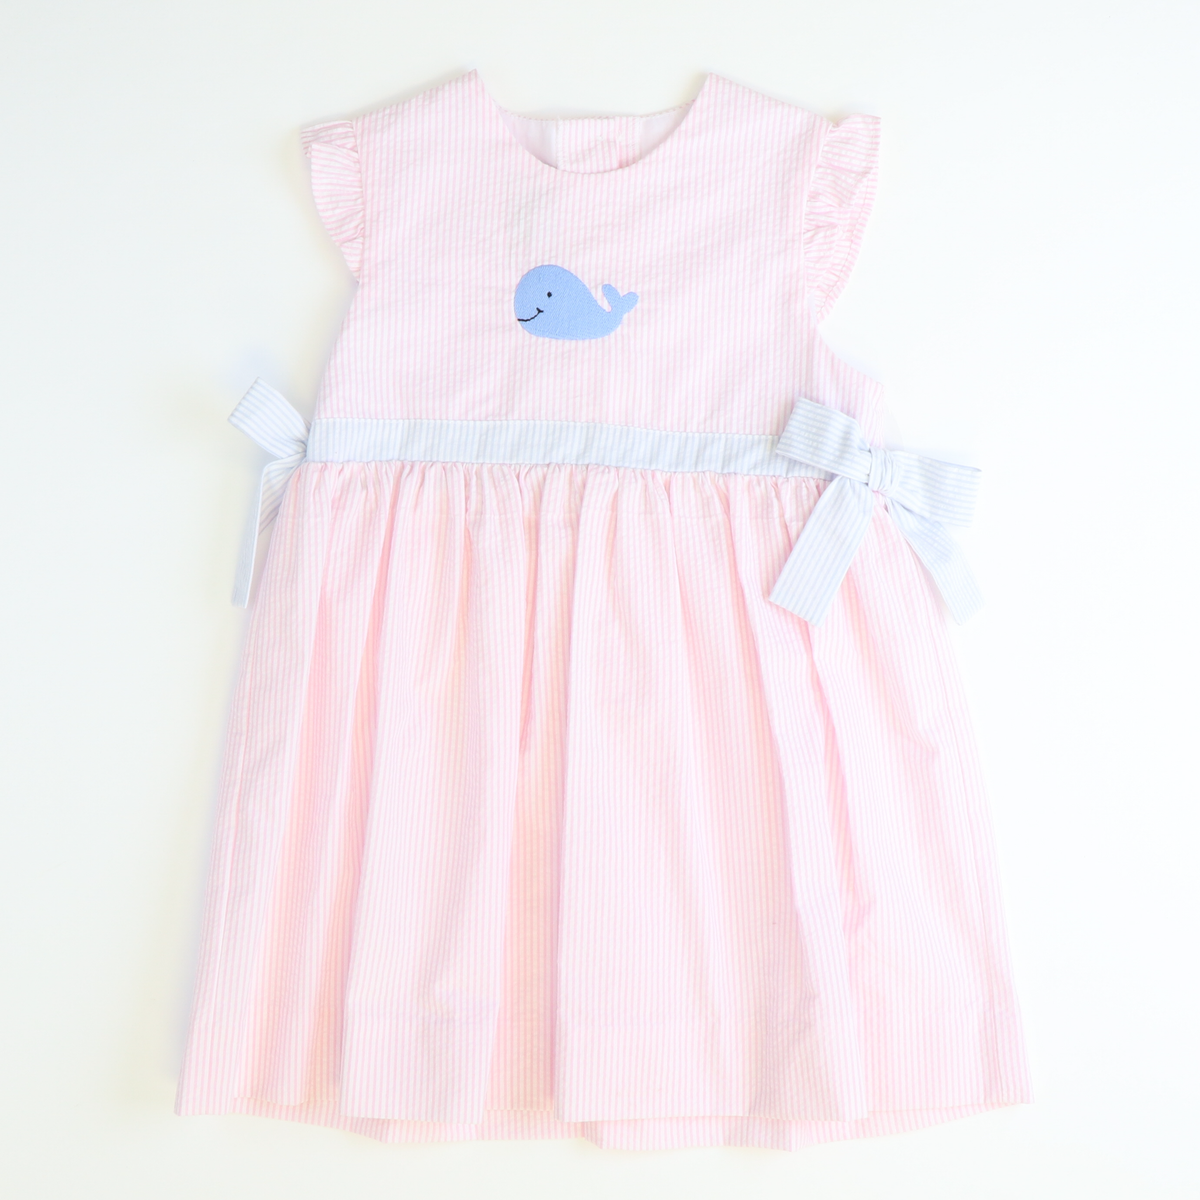 Embroidered Blue Whale Bow Dress - Light Pink Stripe Seersucker